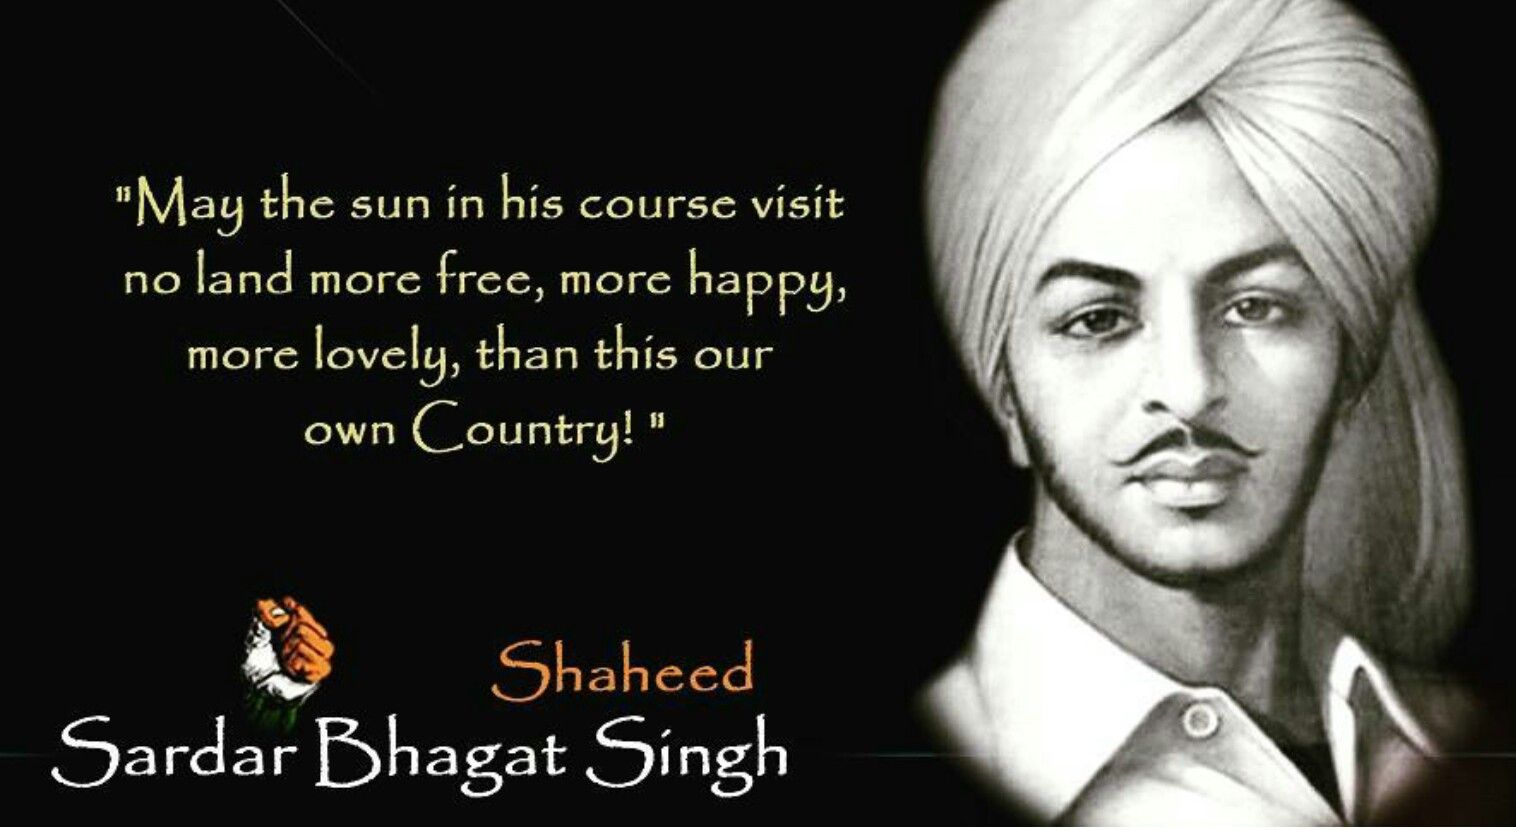 Pin by Pratap Singh on History Bhagat singh quotes